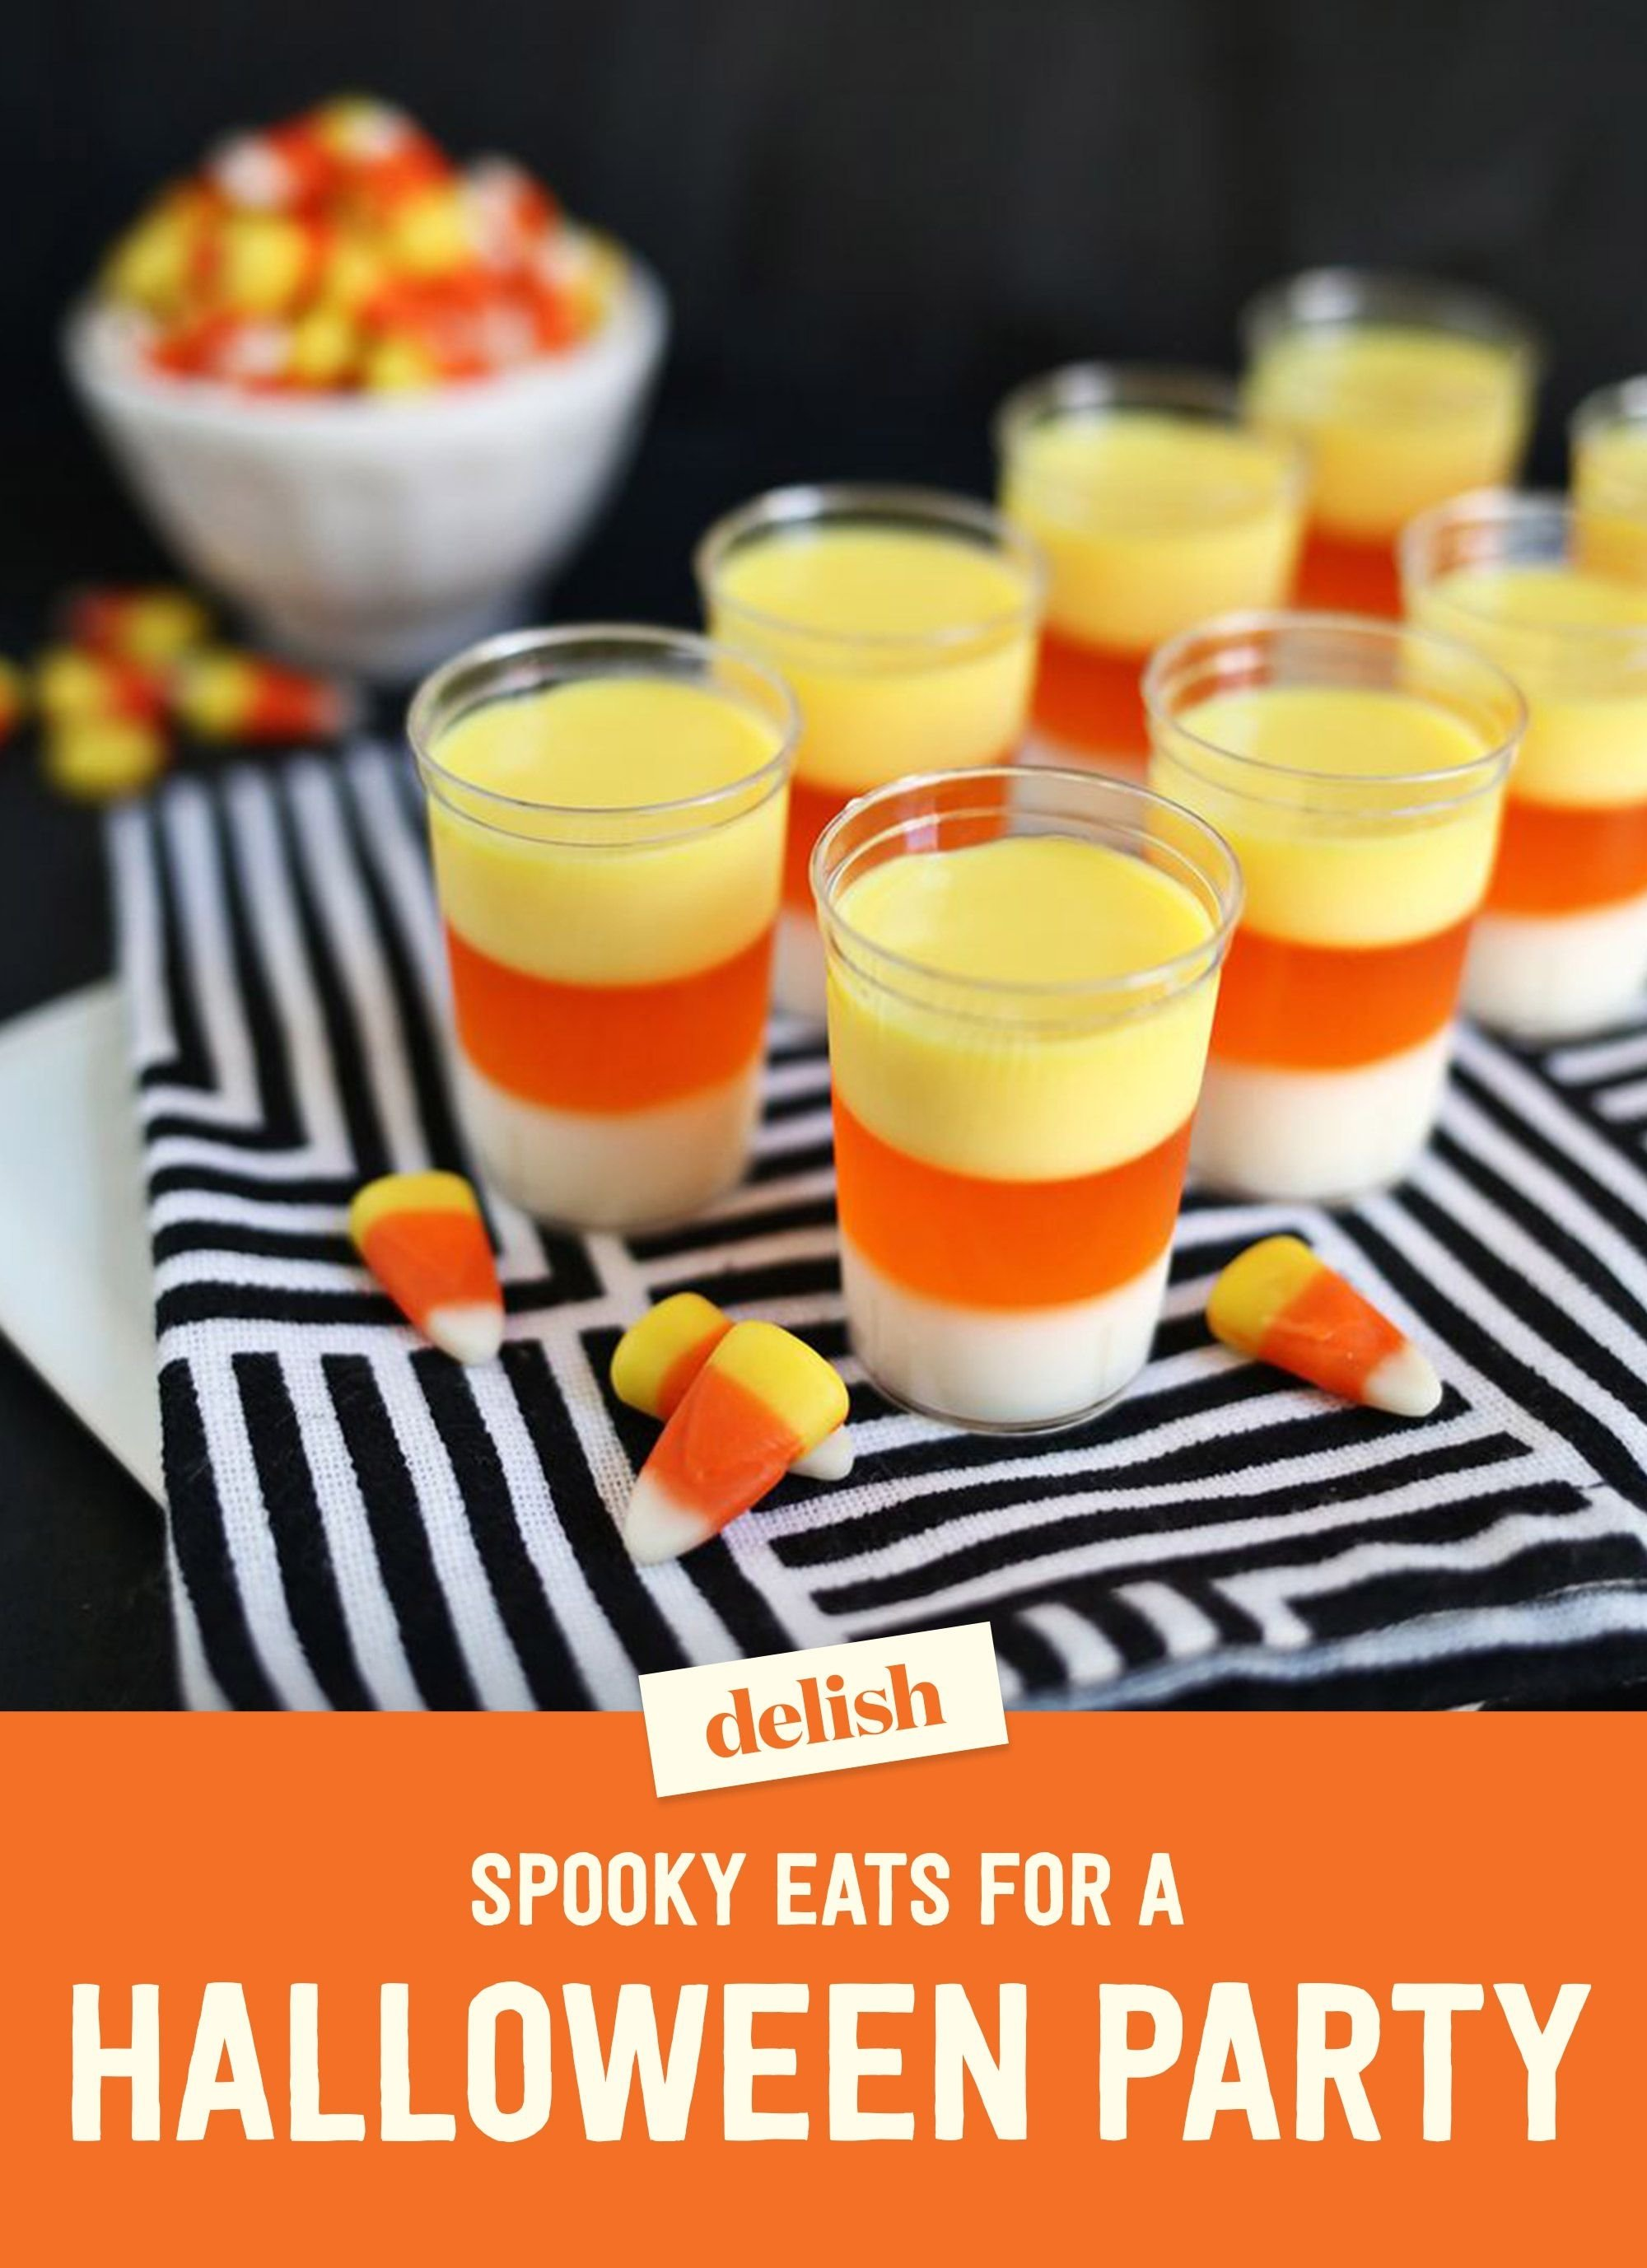 10 Most Popular Halloween Snack Ideas For Adults 40 adult halloween party ideas halloween food for adults delish 8 2020